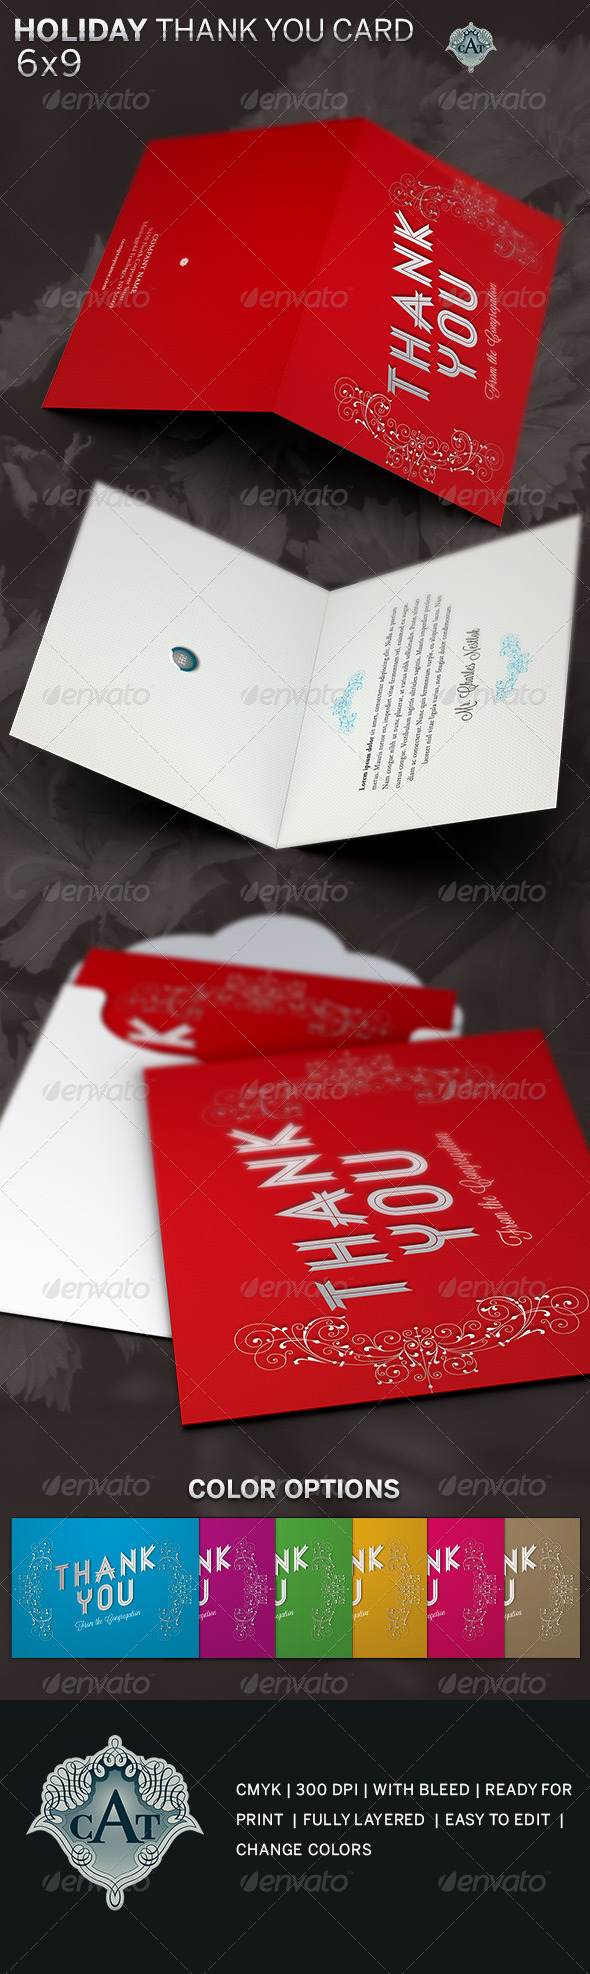 holiday thank you card template example